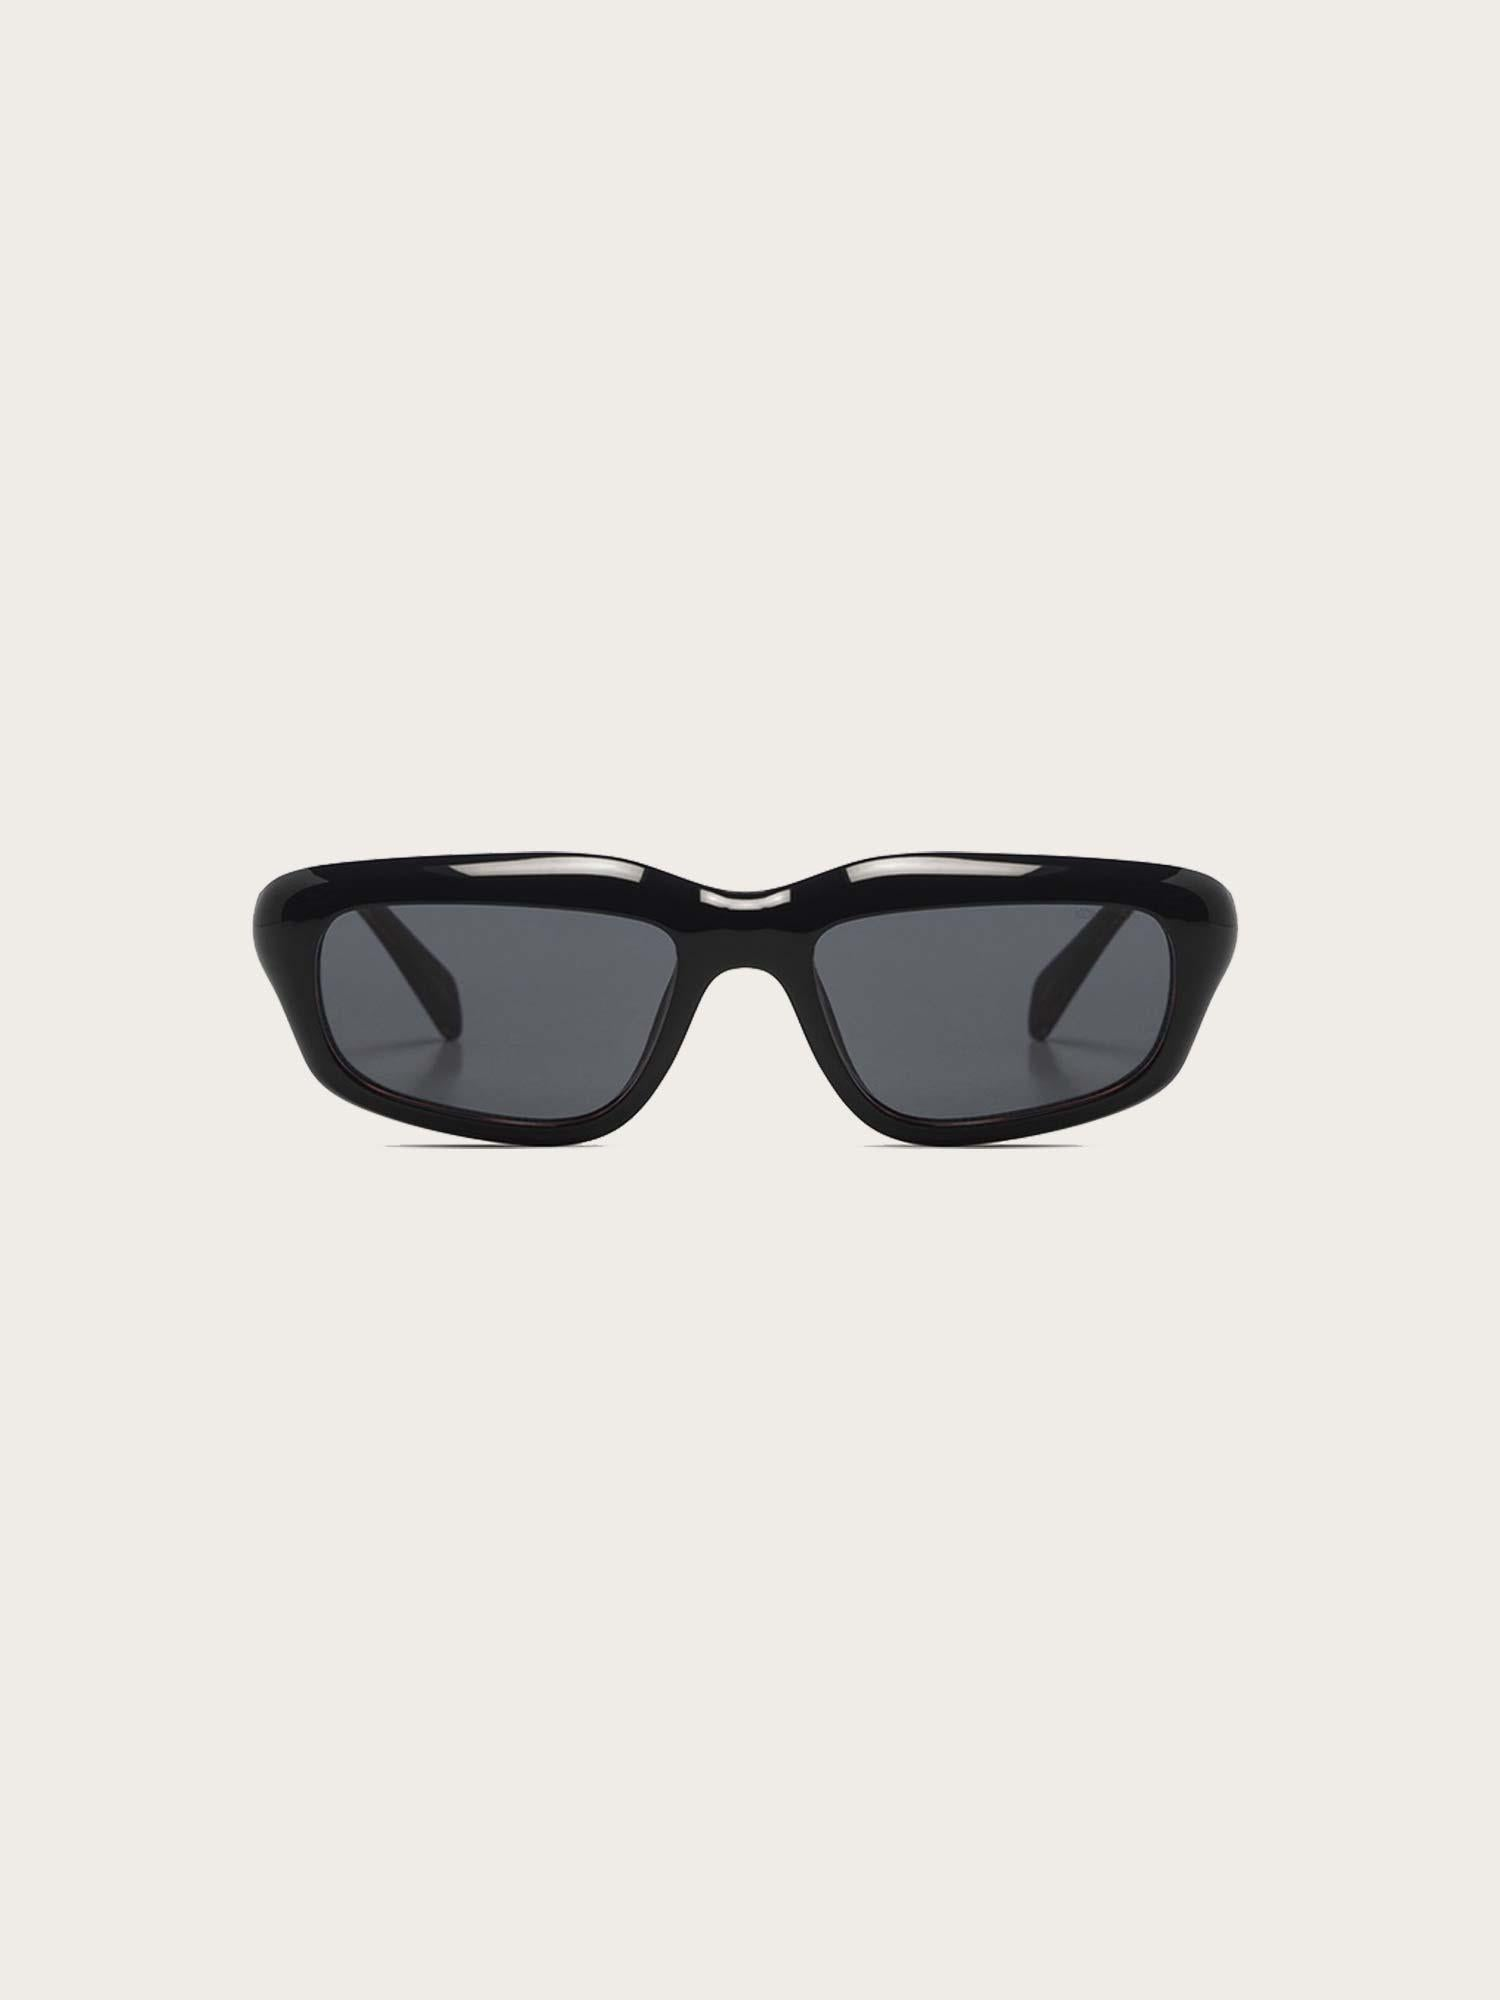 Matt Sunglasses Black Tortoise